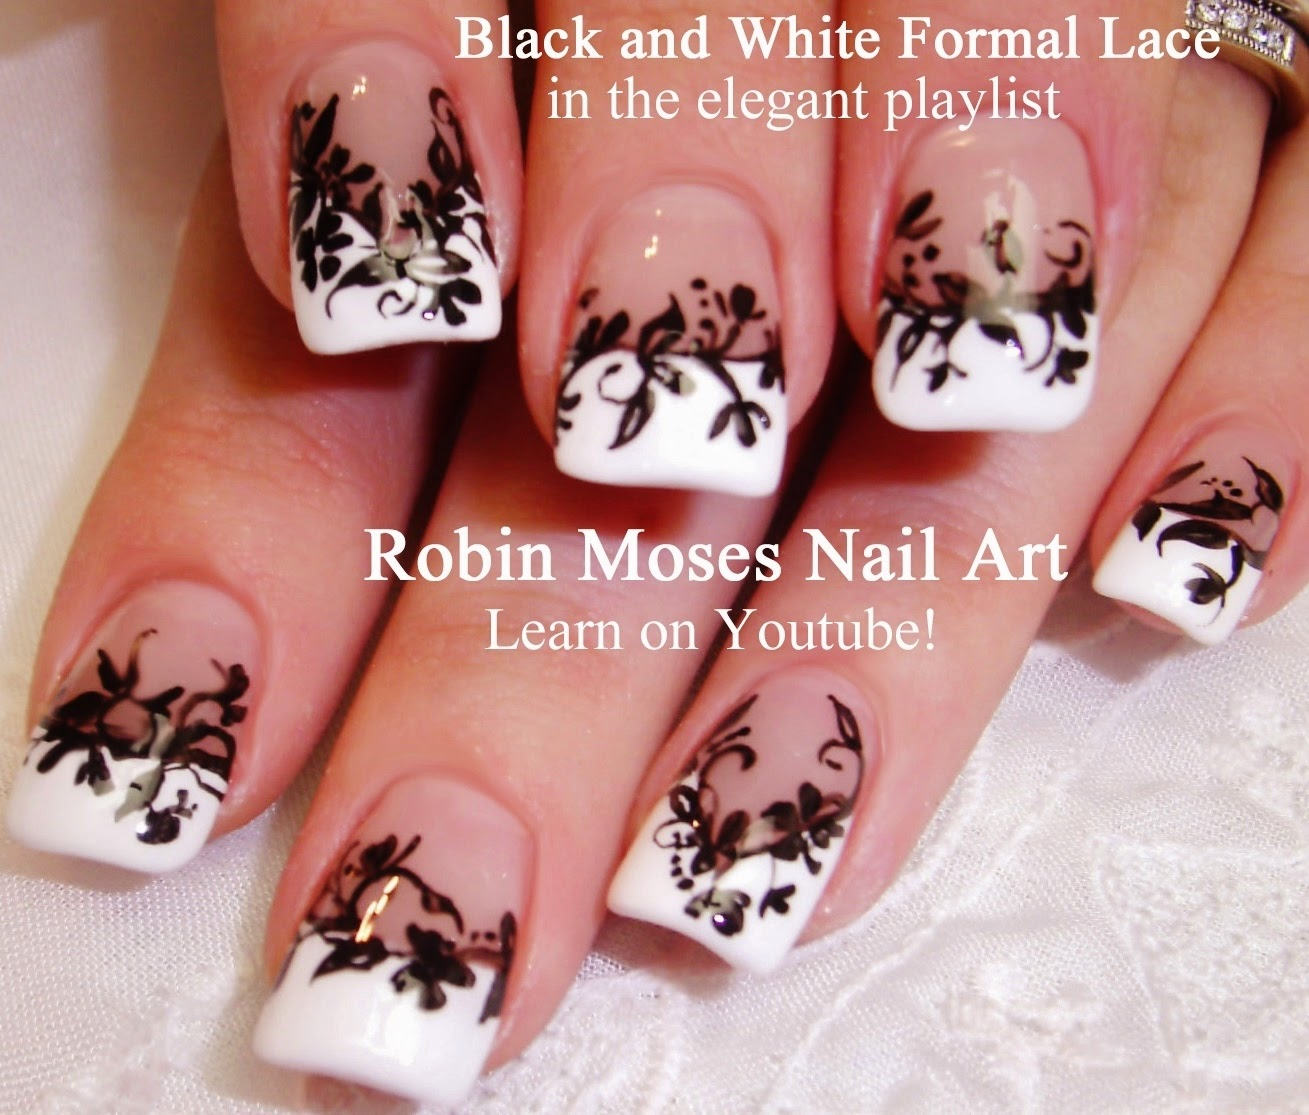 Robin moses nail art flower nails black and white nails nail art tutorials flower nail art diy easy flower nail art designs for beginners and up prinsesfo Image collections